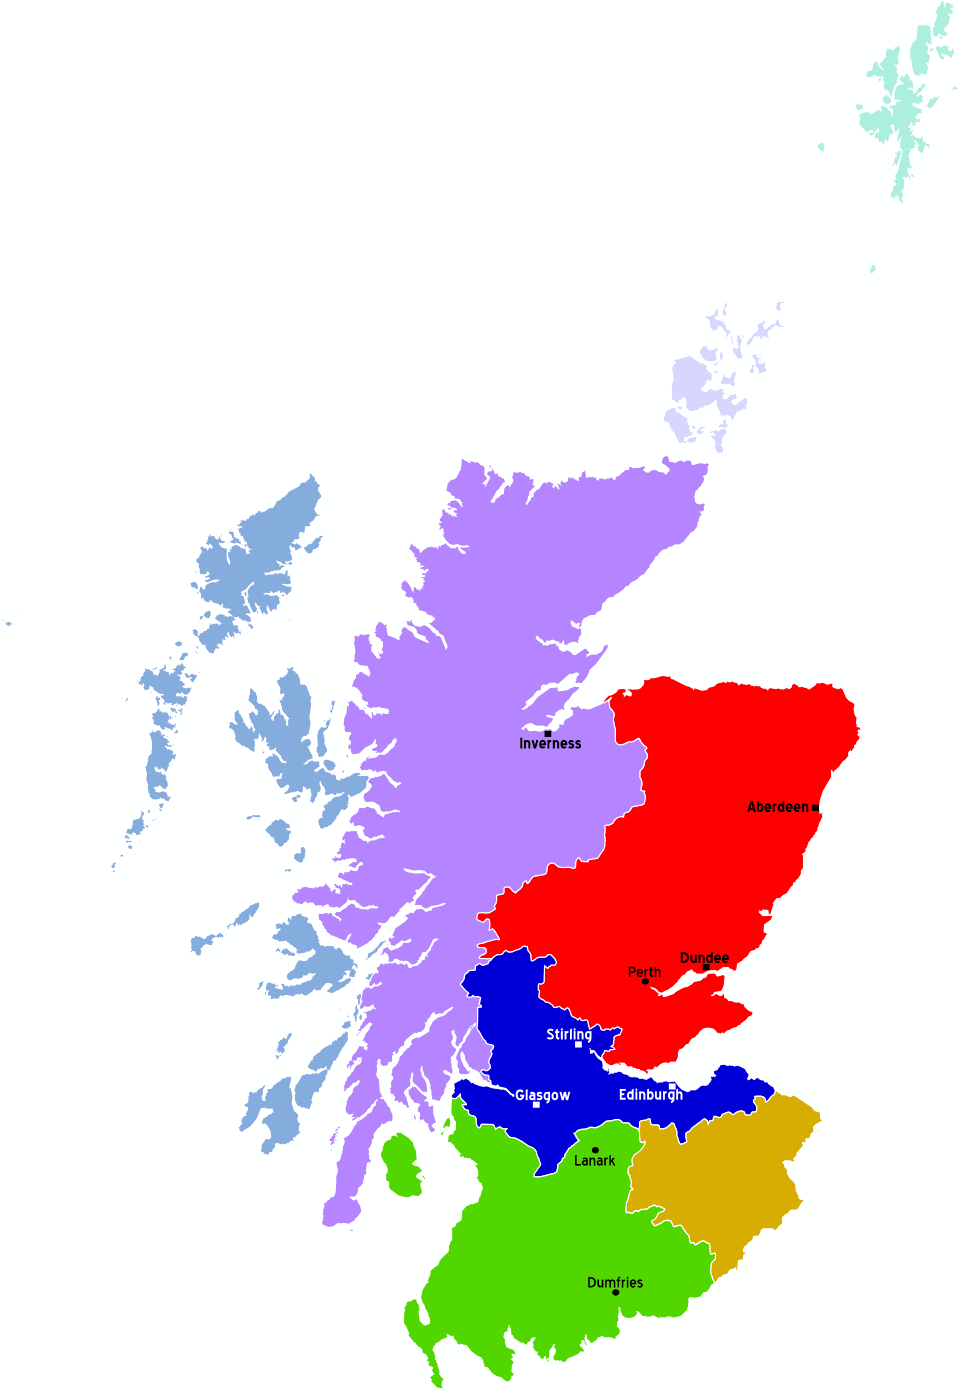 Map of Scotland showing regions and major cities | MAPS | Scotland Important Cities Map Of Scotland on map of england with towns, map of netherlands cities, scotland towns and cities, map of s korea cities, map scotland scottish highlands, map of western tennessee cities, map of europe with cities, map of mexican riviera cities, map of guyana cities, map of neolithic cities, map of rome cities, map of northern europe cities, map of french riviera cities, map of the carolinas cities, map of france cities, map of palau cities, map of uk cities, map of central mexico cities, map of switzerland cities, map of belgium cities,